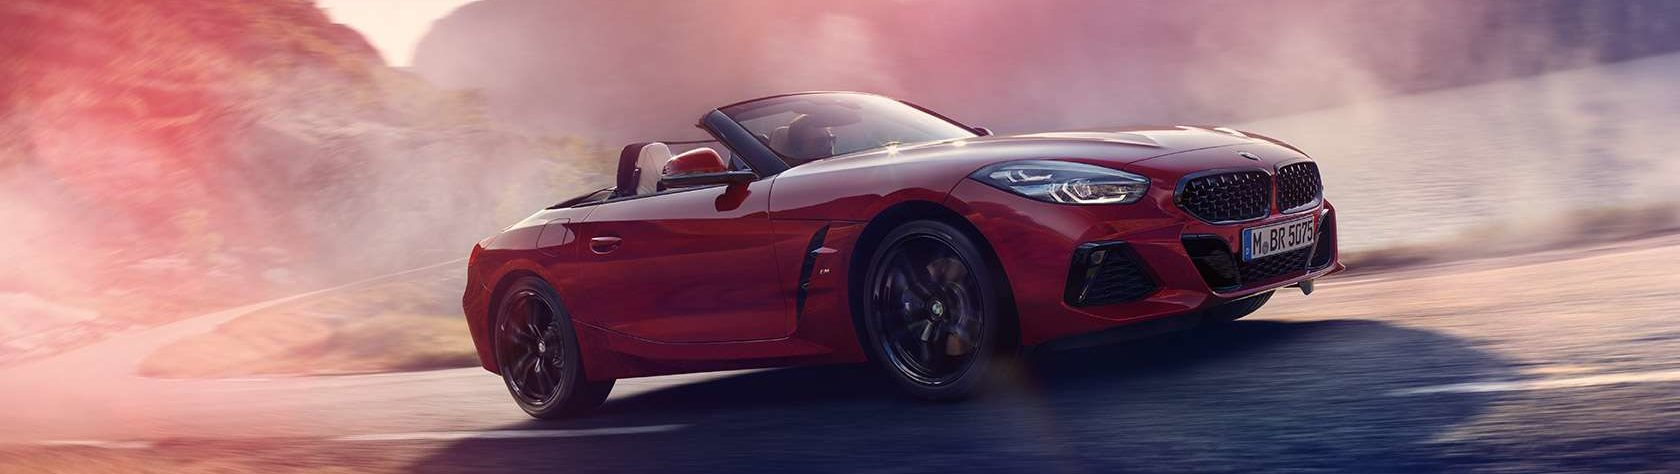 BMW Z4 driving on a dusty road